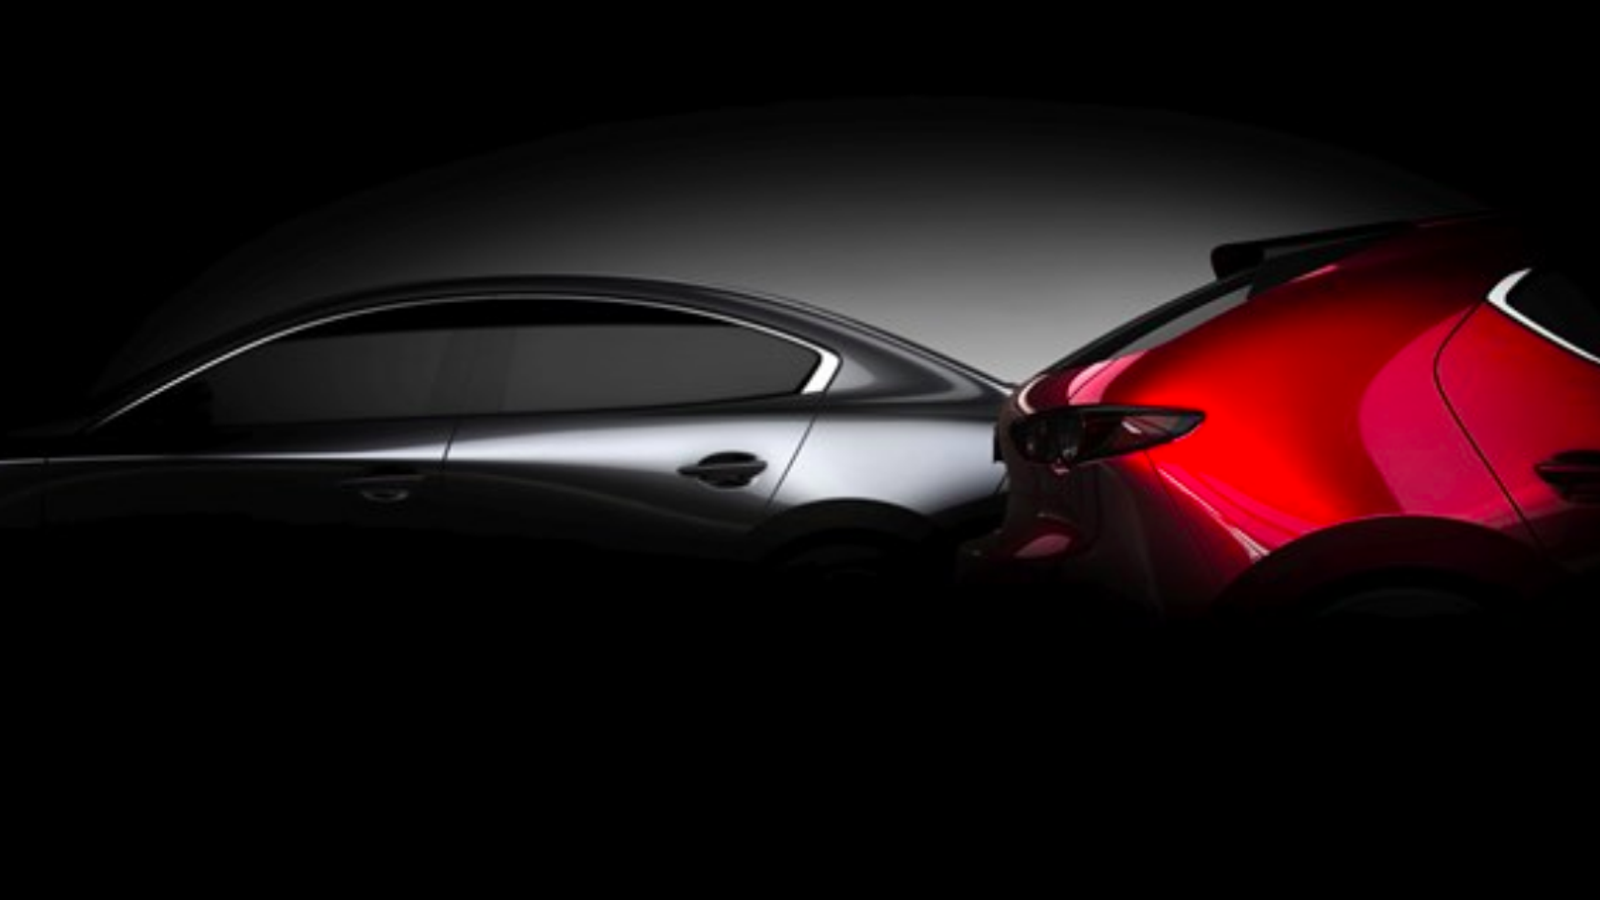 New Mazda 3 Will Debut in LA With Holy Grail Skyactiv-X Engine